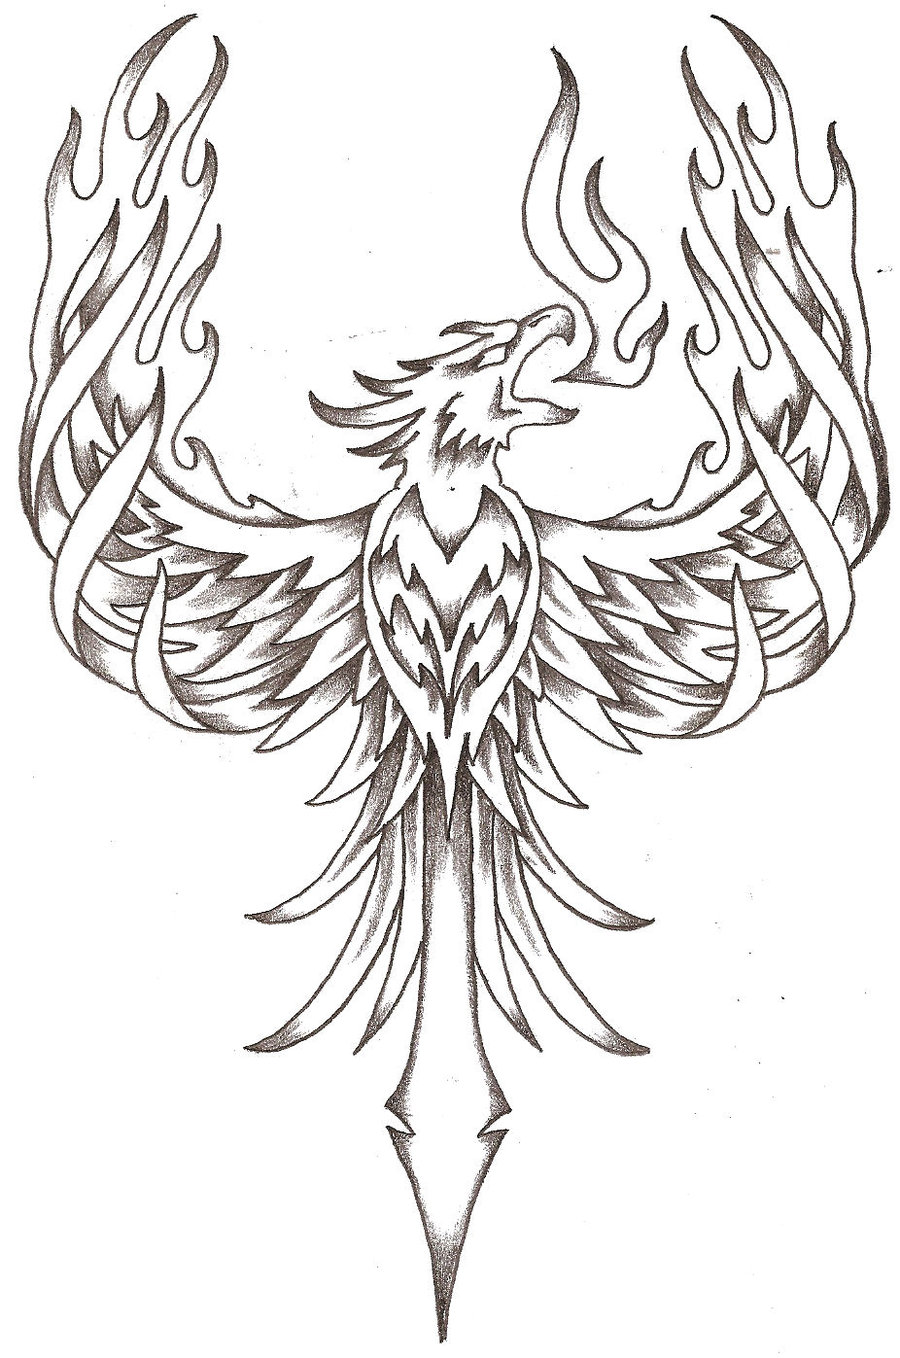 The best free Firebird drawing images. Download from 59